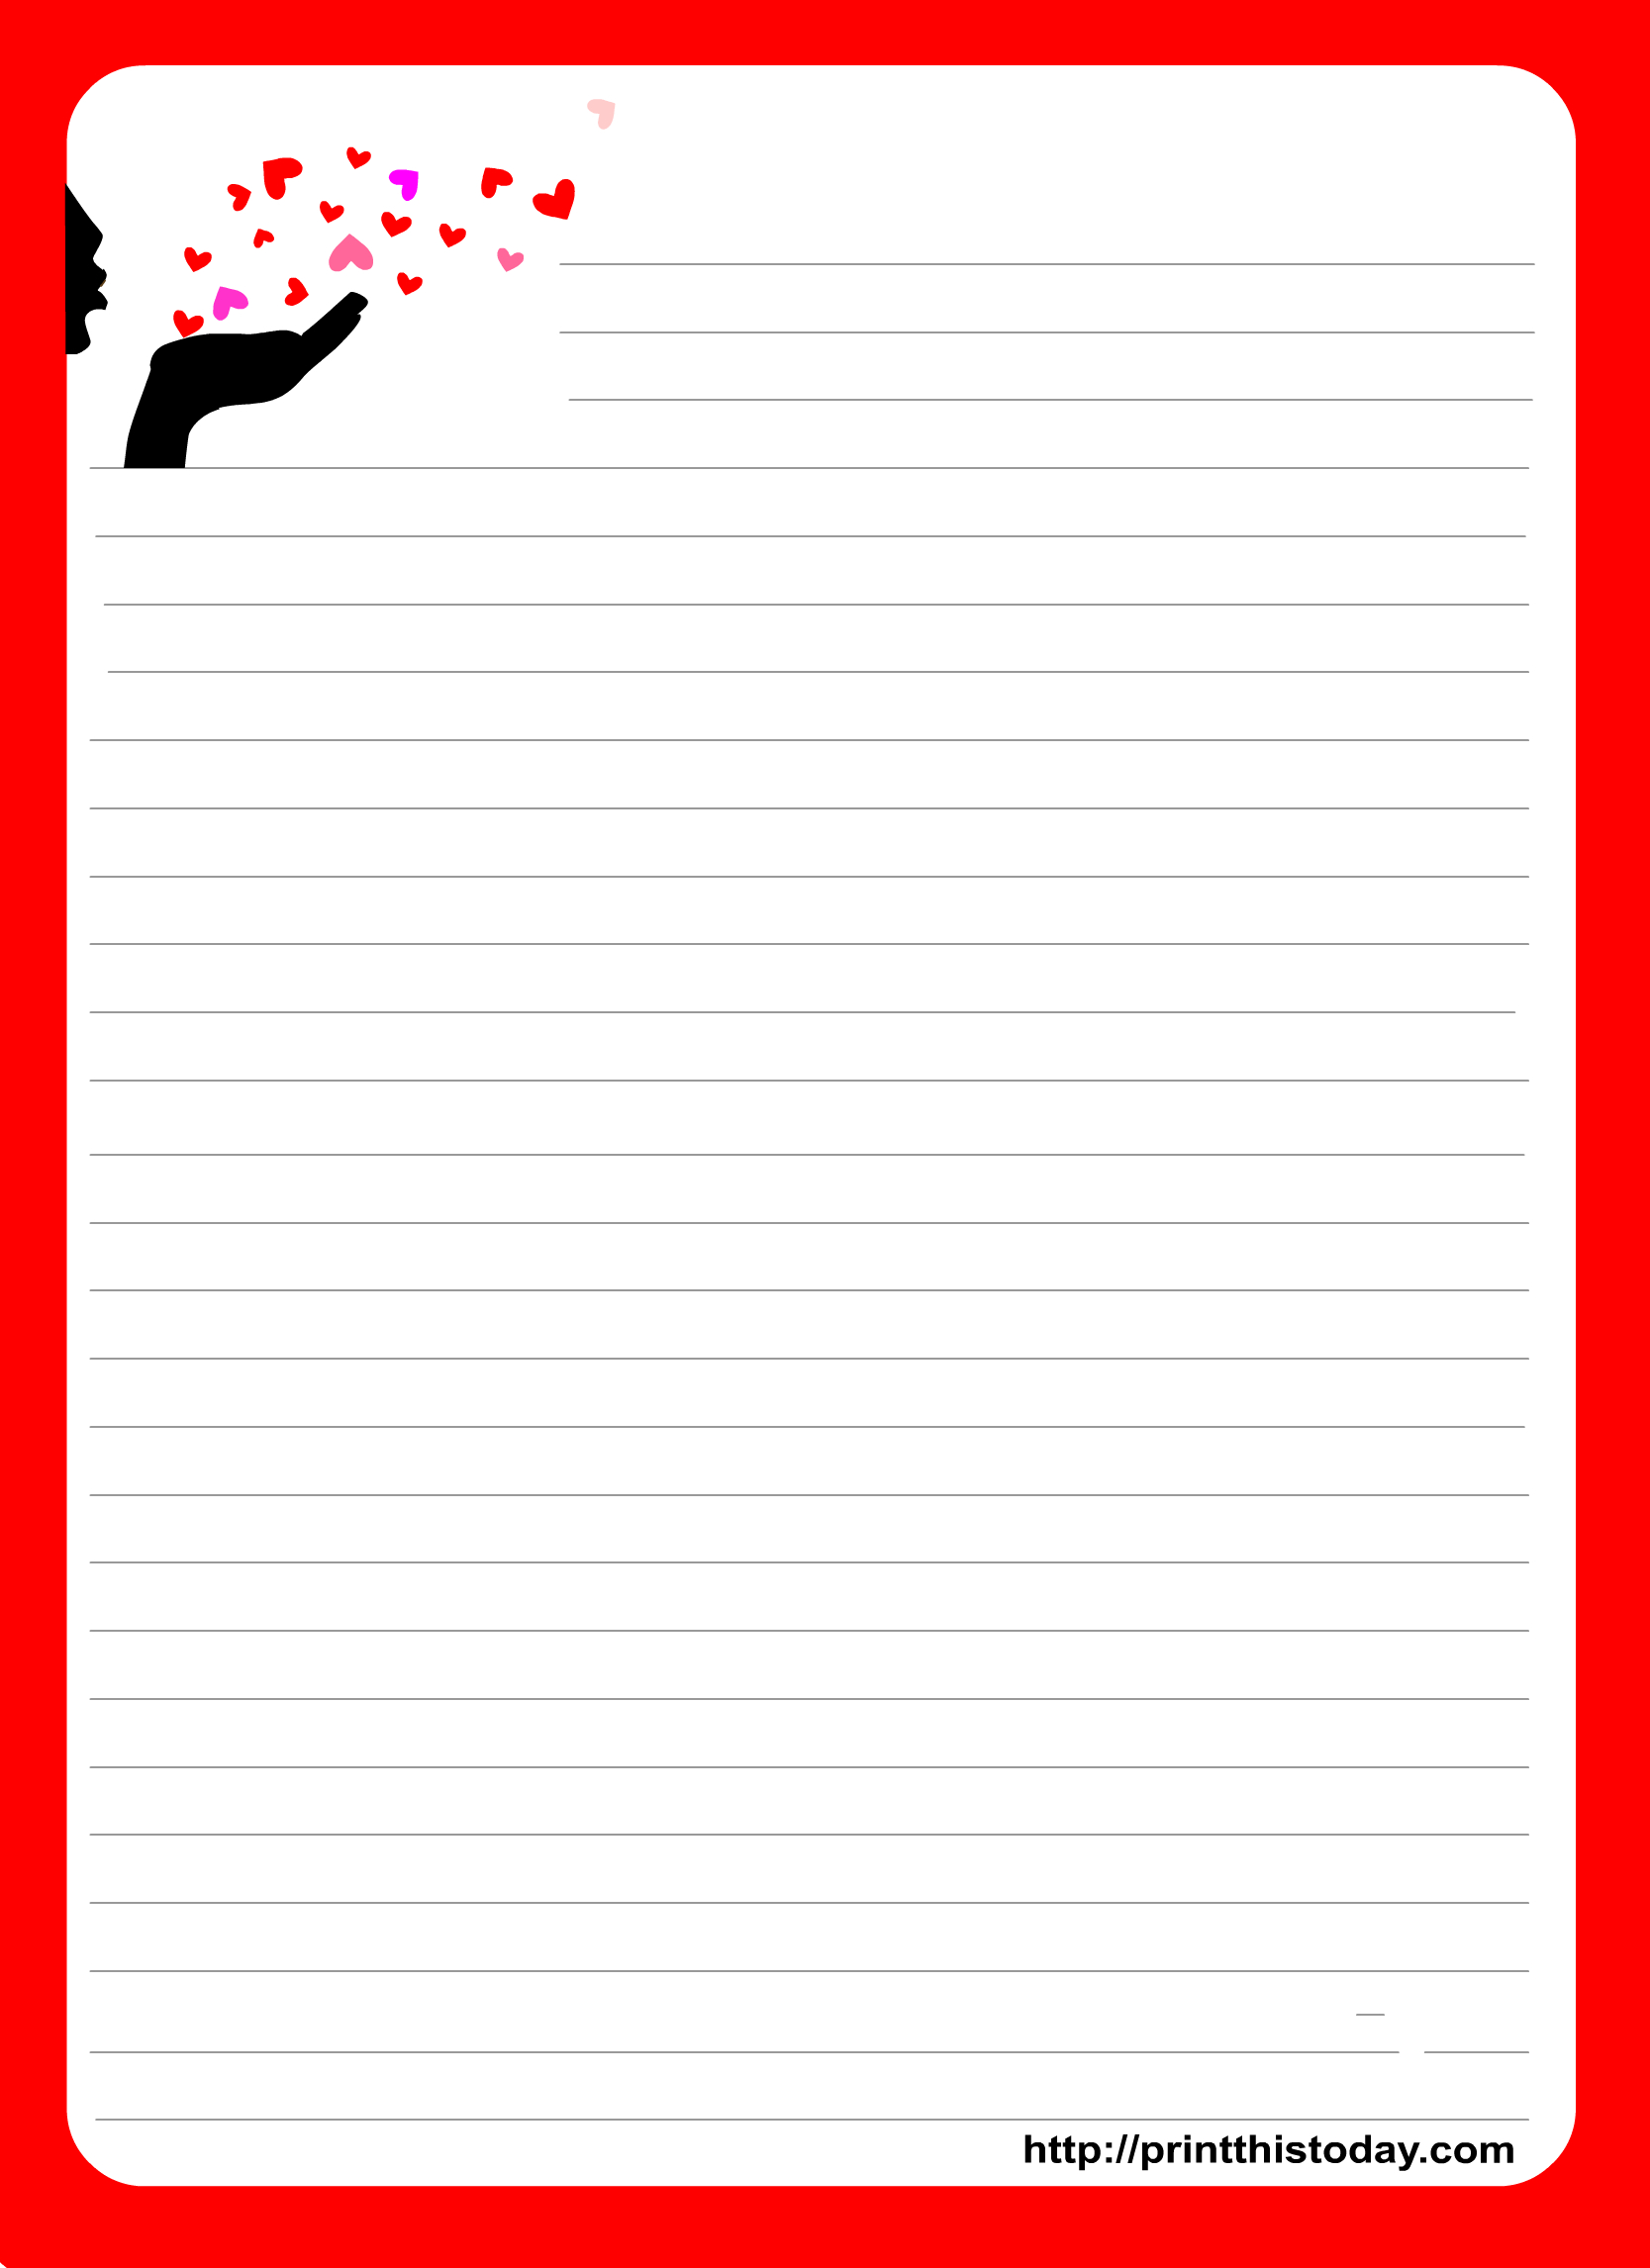 This Is An Adorable Love Letter Pad Stationery Design Which Has - Free Printable Love Letter Paper